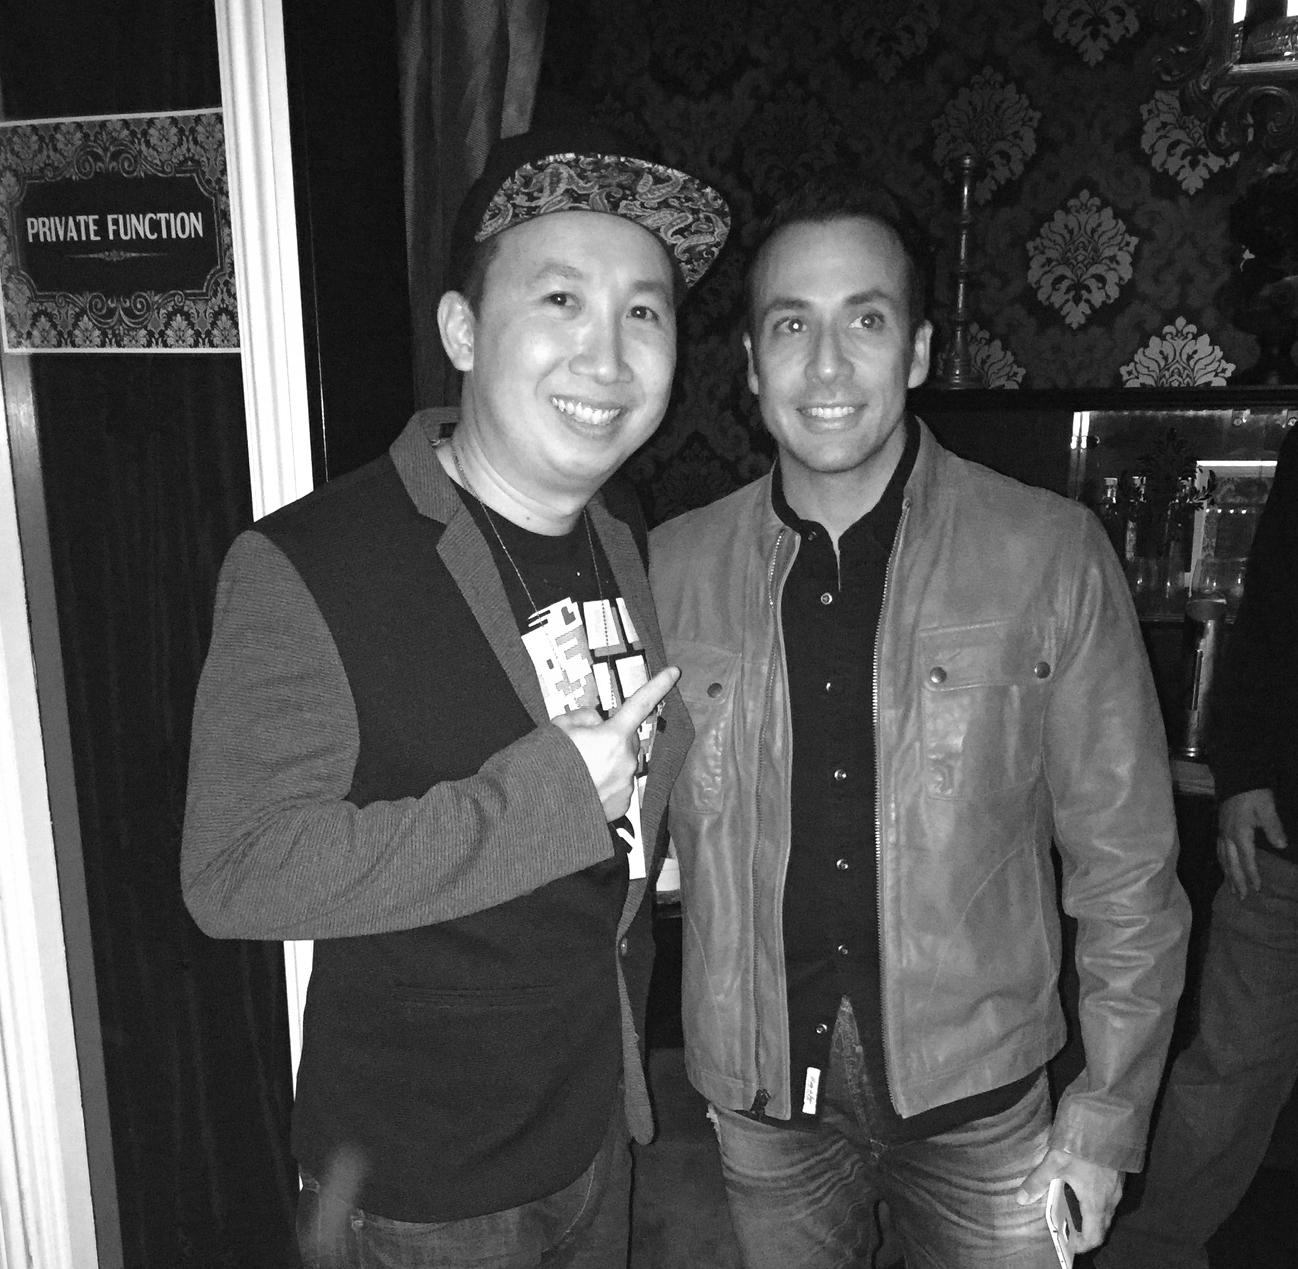 Photo with Howie D from Backstreet Boys